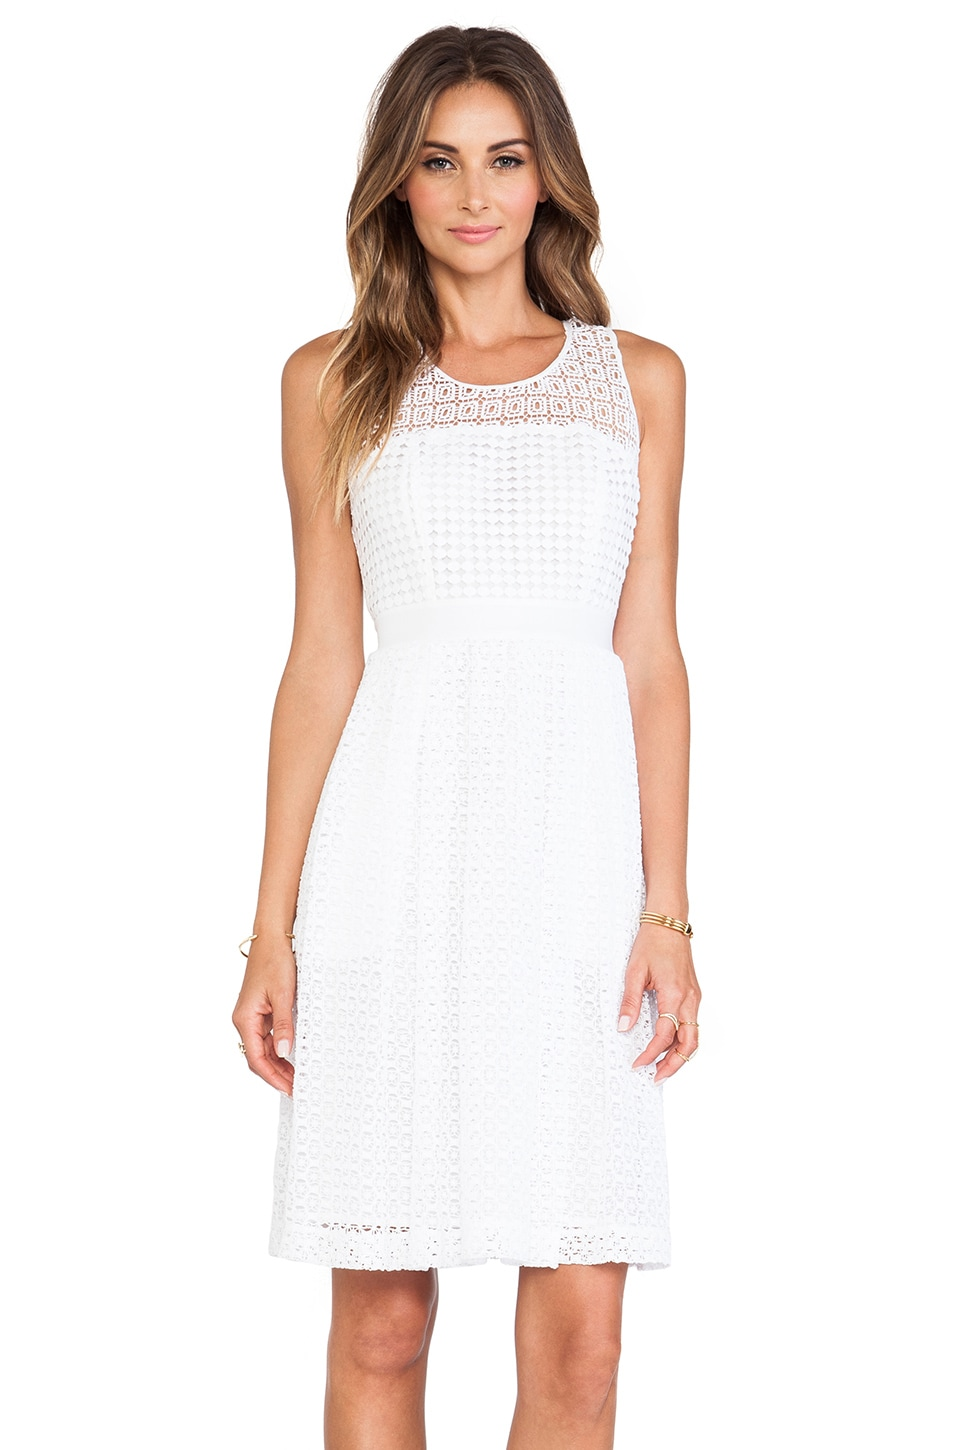 Catherine Malandrino Geri Racerback Fit & Flare Lace Dress in Blanc